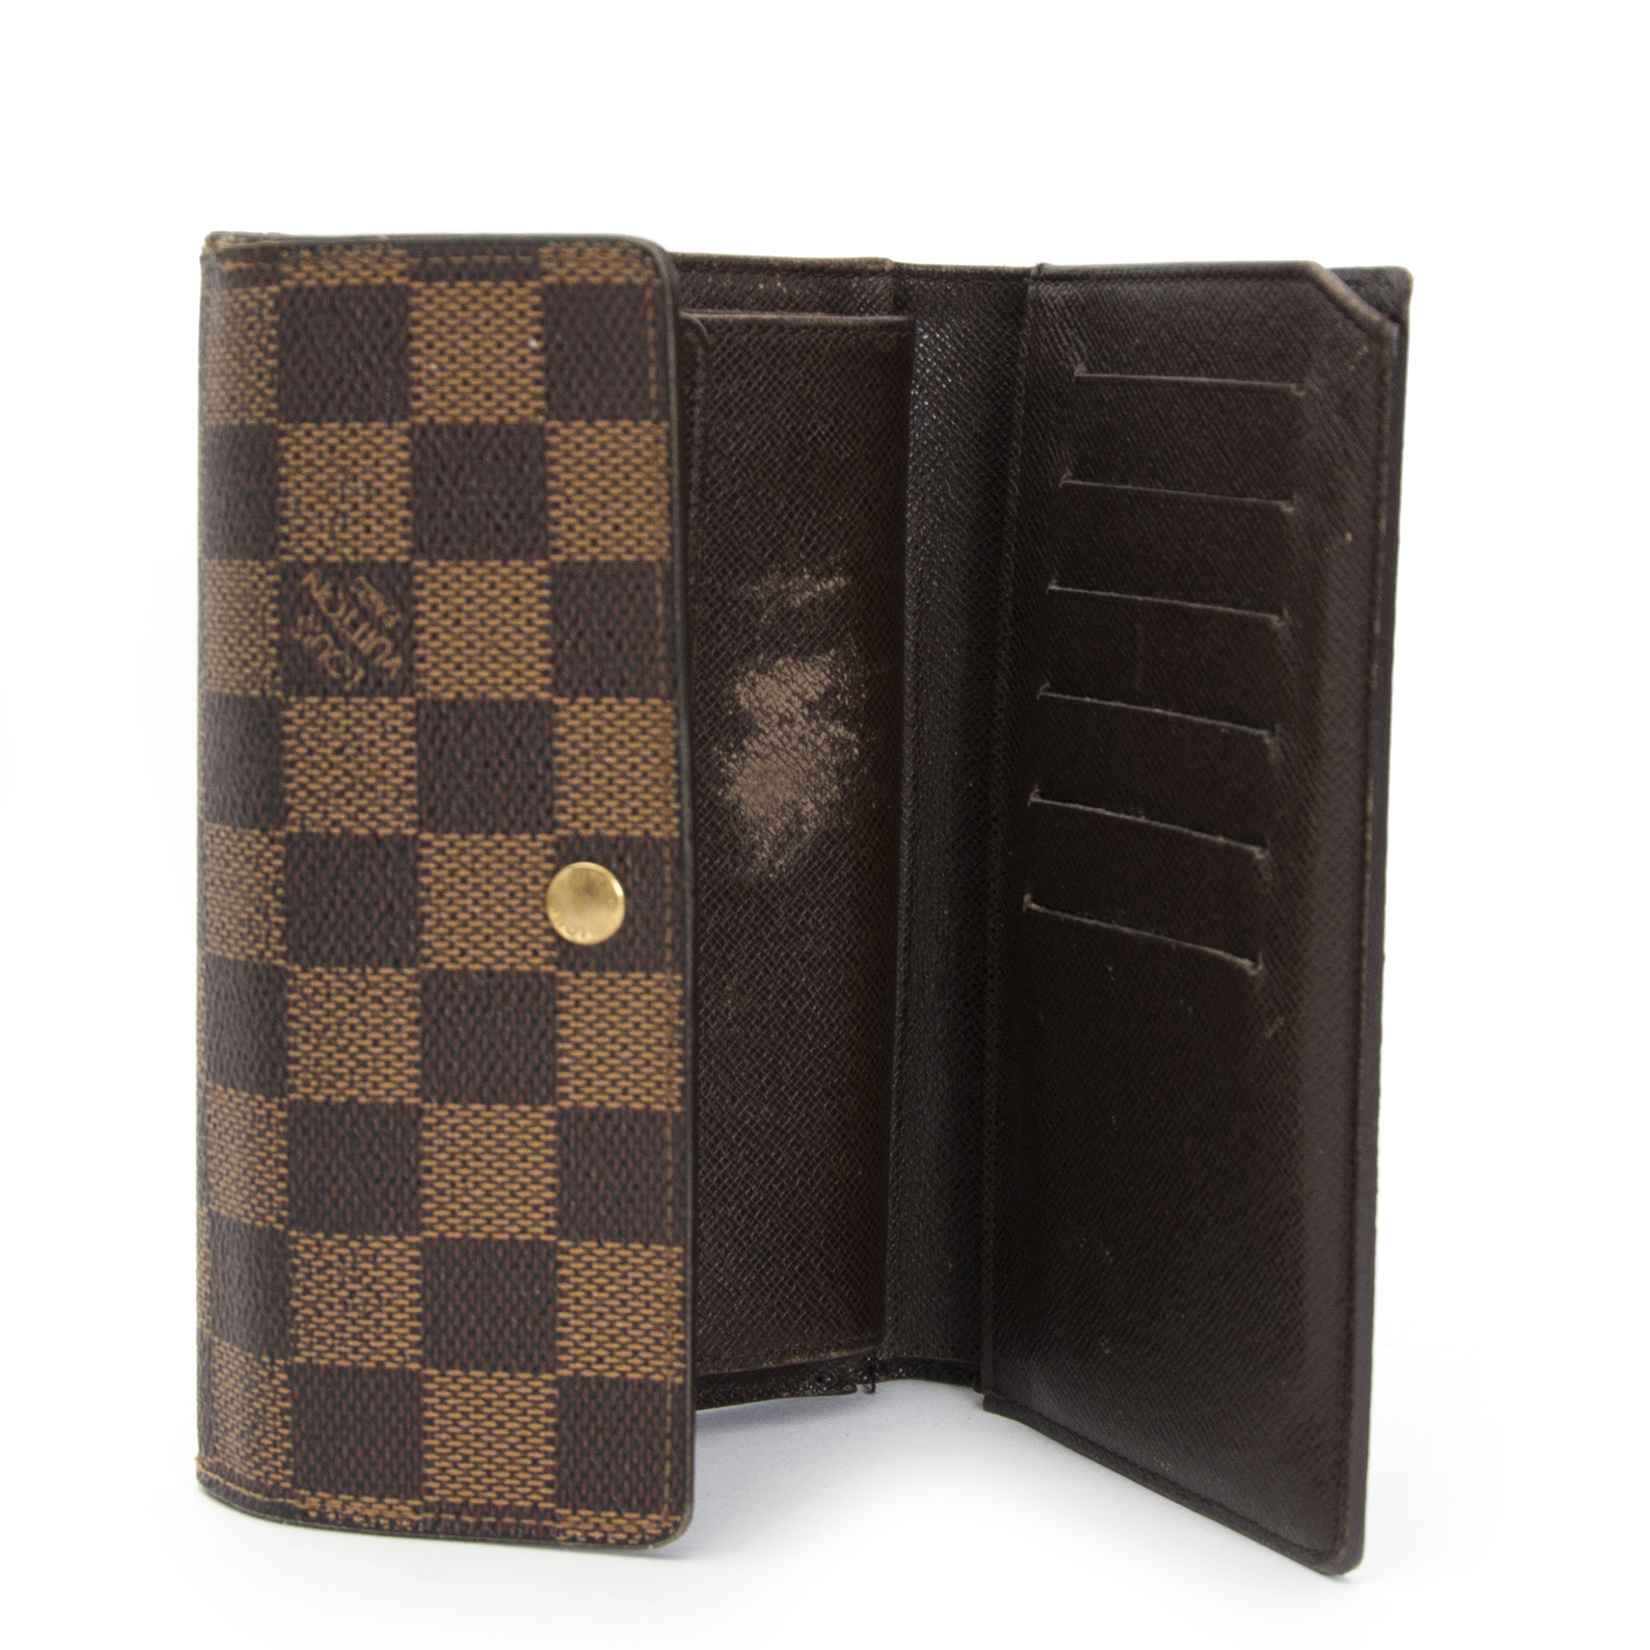 looking for a secondhand Louis Vuitton Damier Ebene Wallet